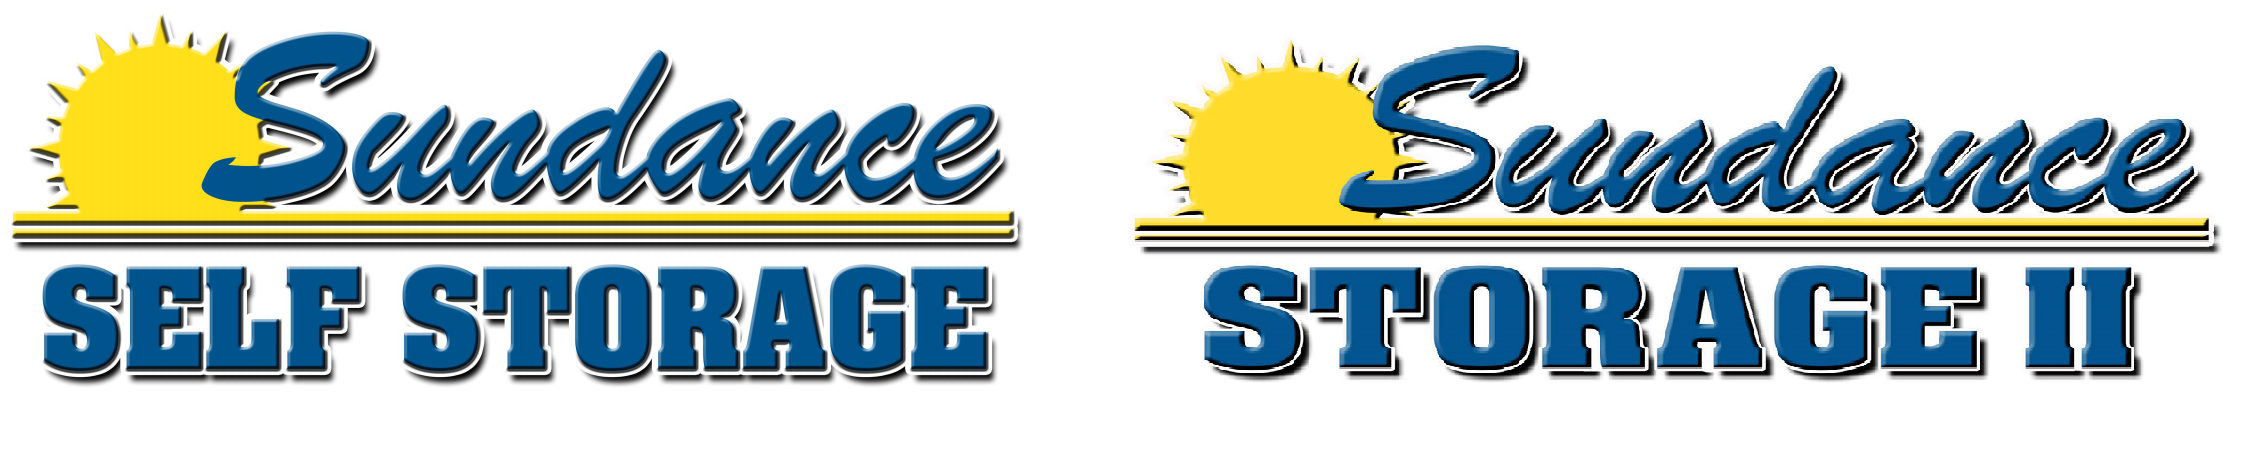 Sundance Self Storage